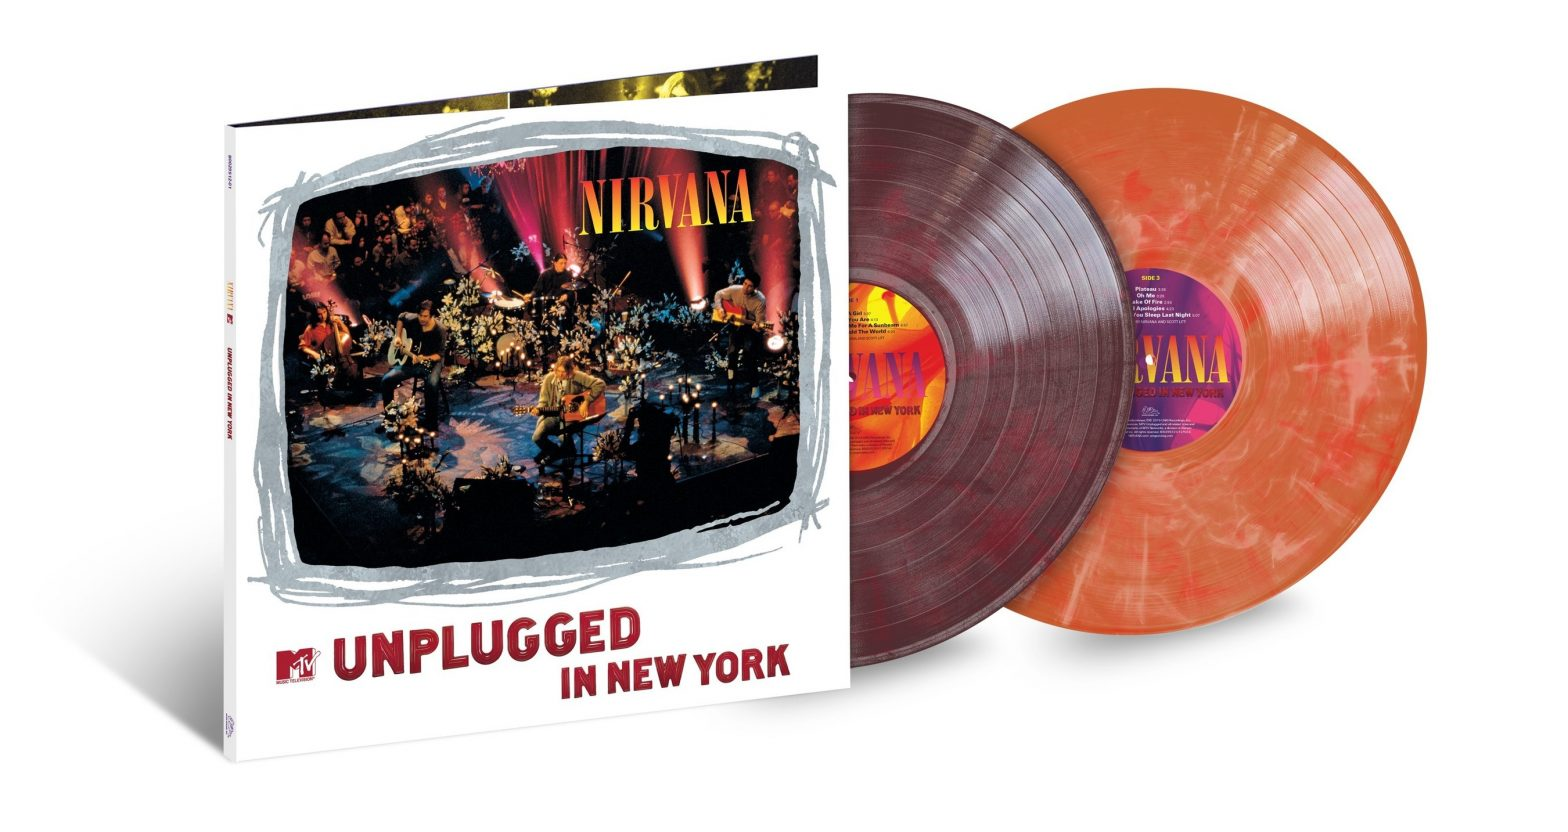 UMe Nirvana Unplugged Vinyl